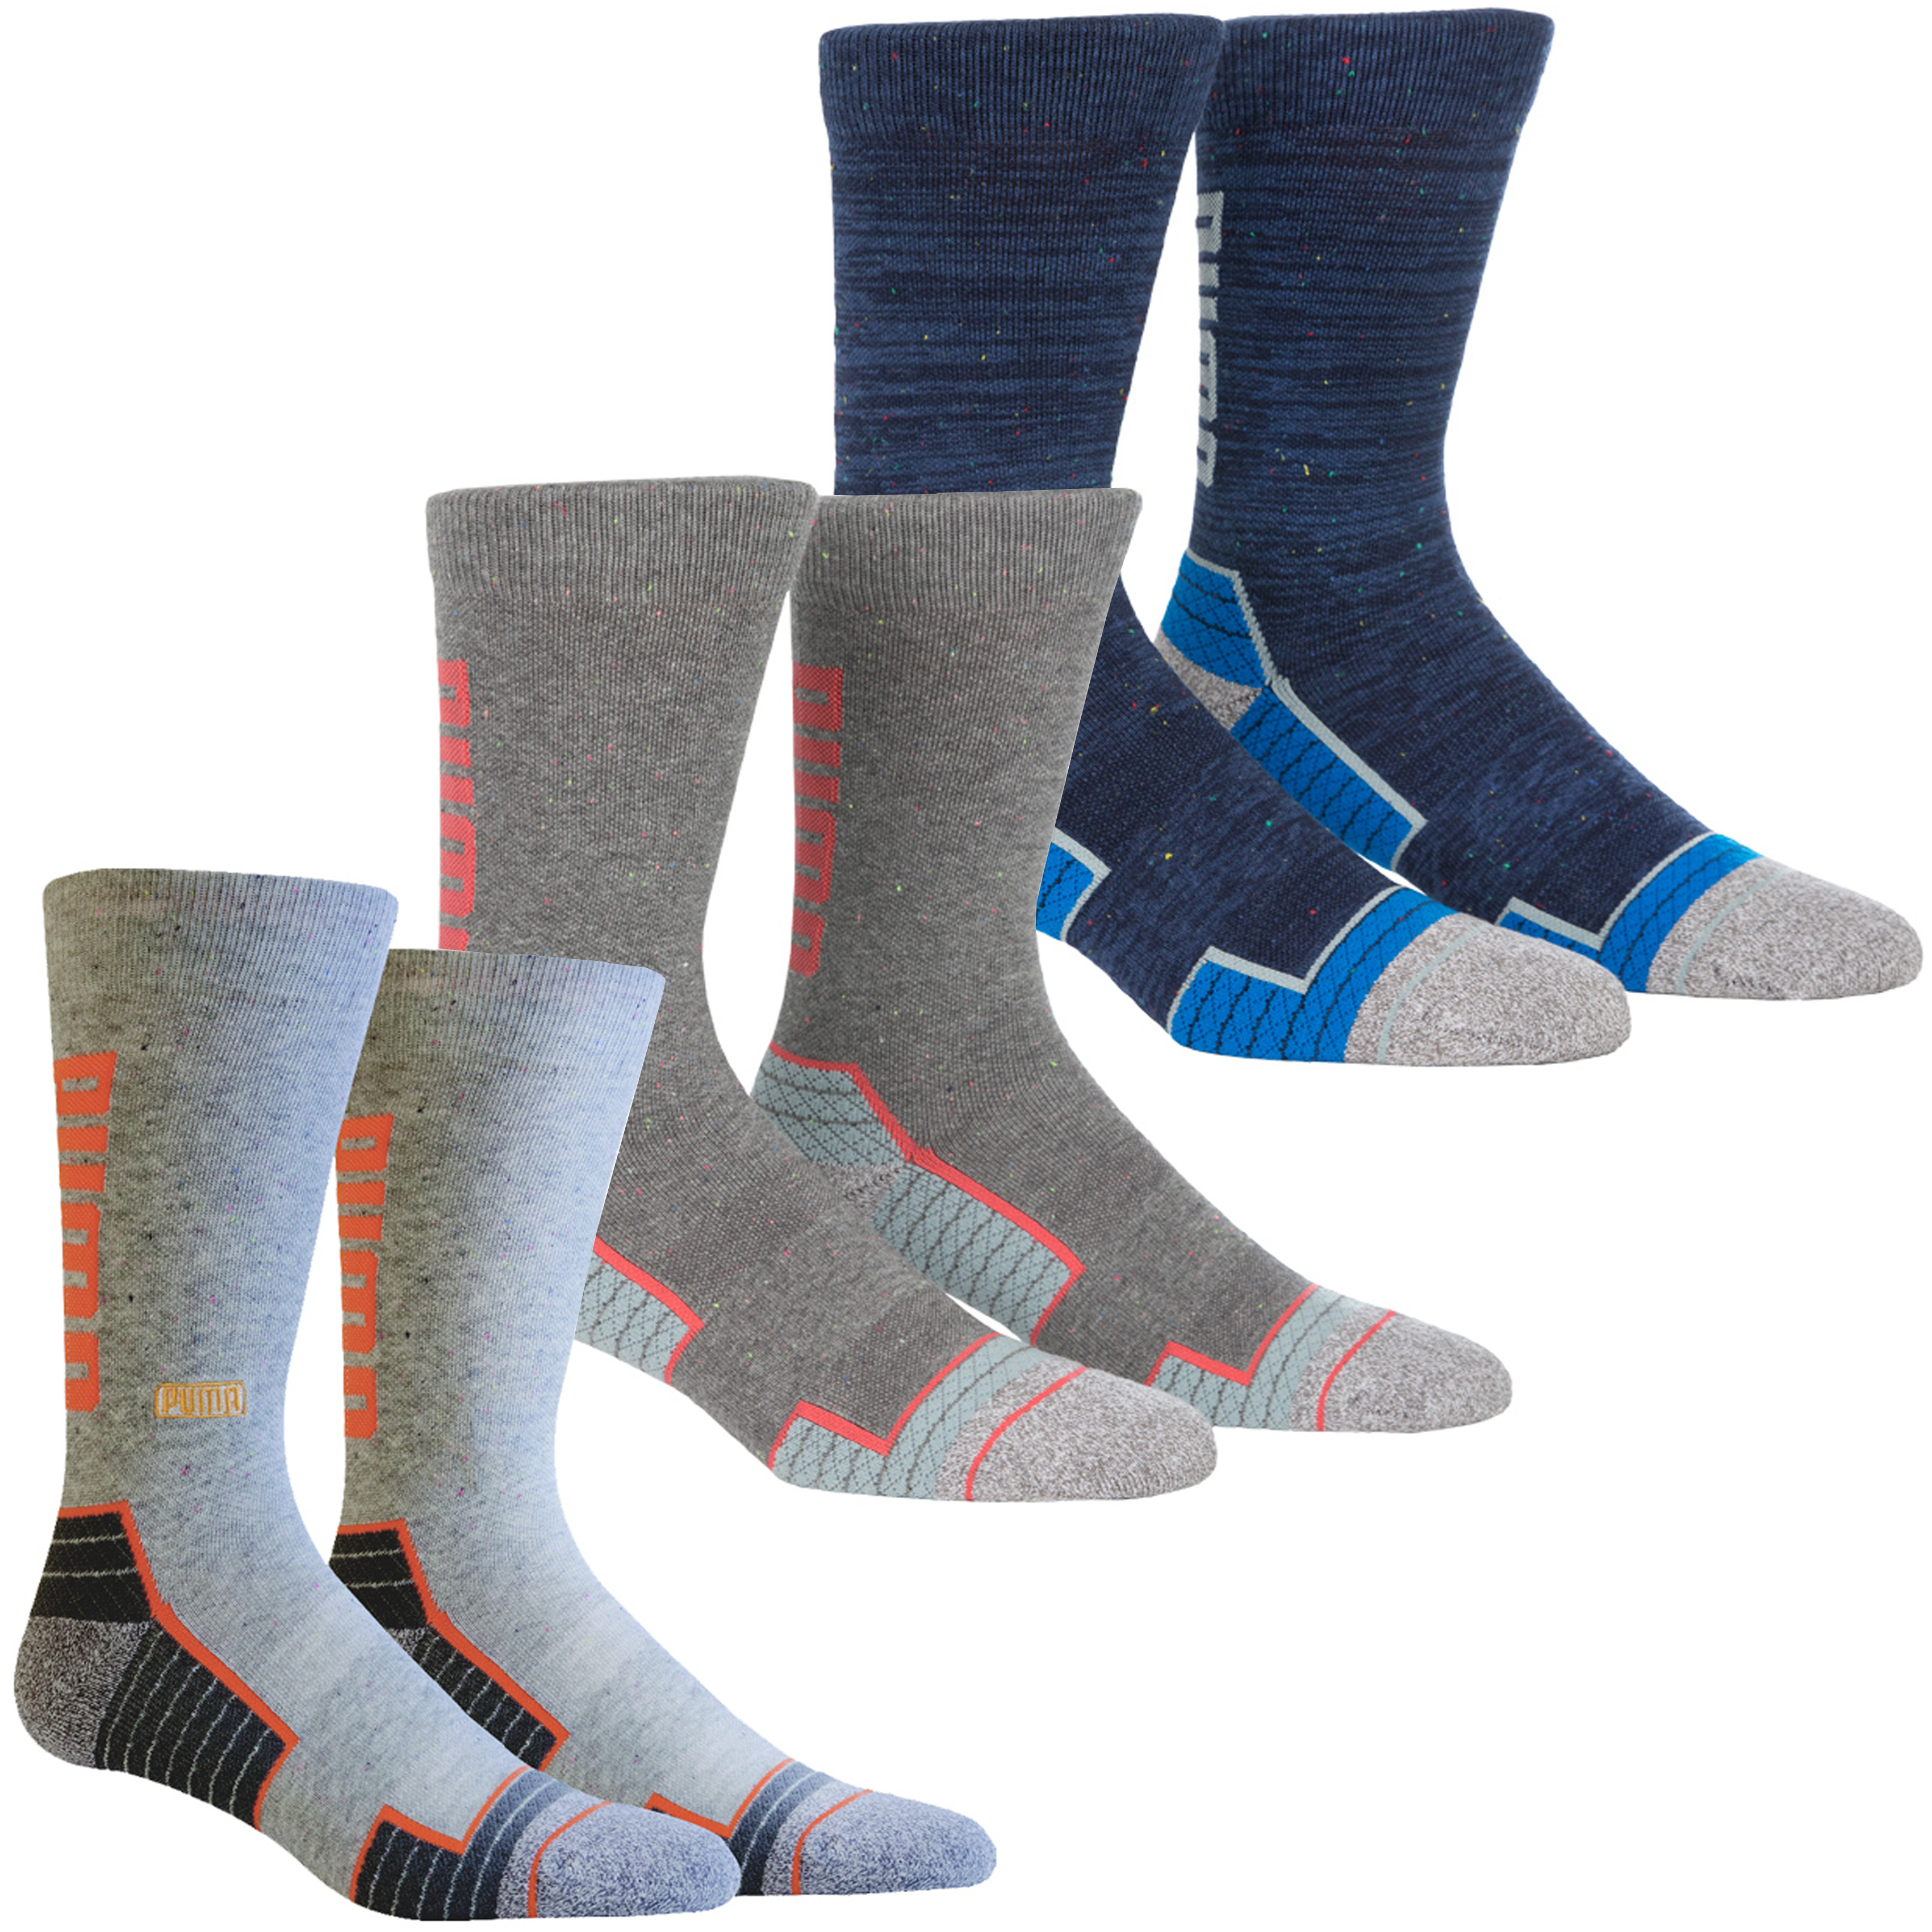 Details about Puma Golf Mens Fusion Wordmark Moisture Wicking Comfort Crew  Socks